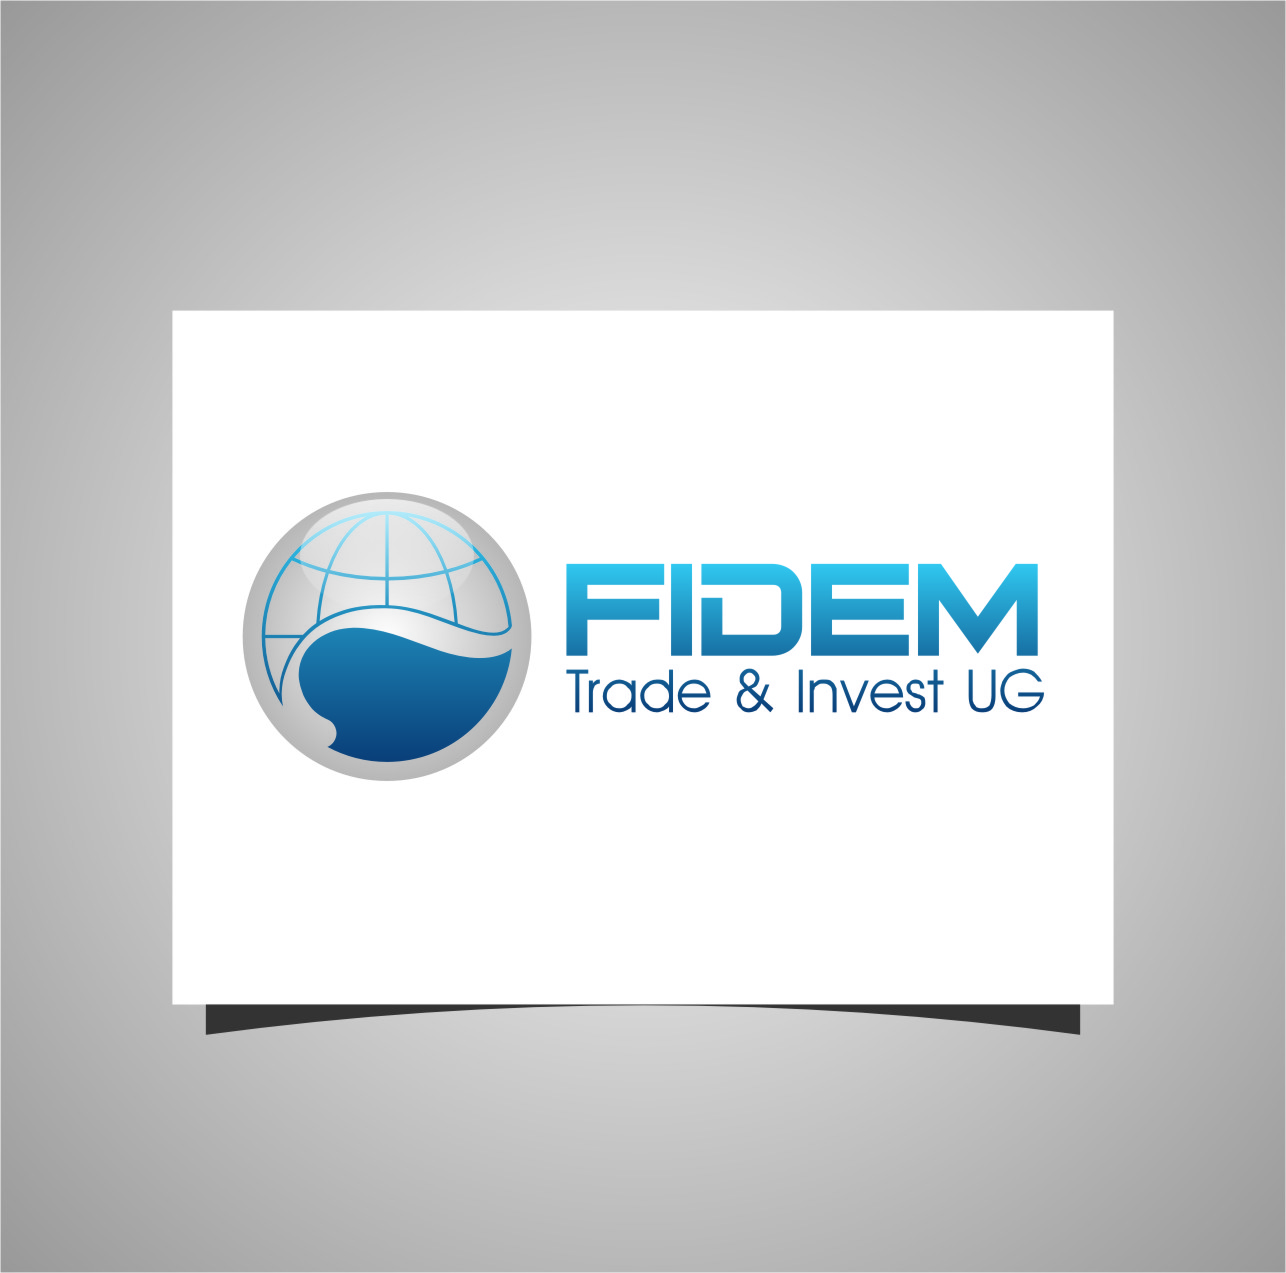 Logo Design by Ngepet_art - Entry No. 90 in the Logo Design Contest Professional Logo Design for FIDEM Trade & Invest UG.